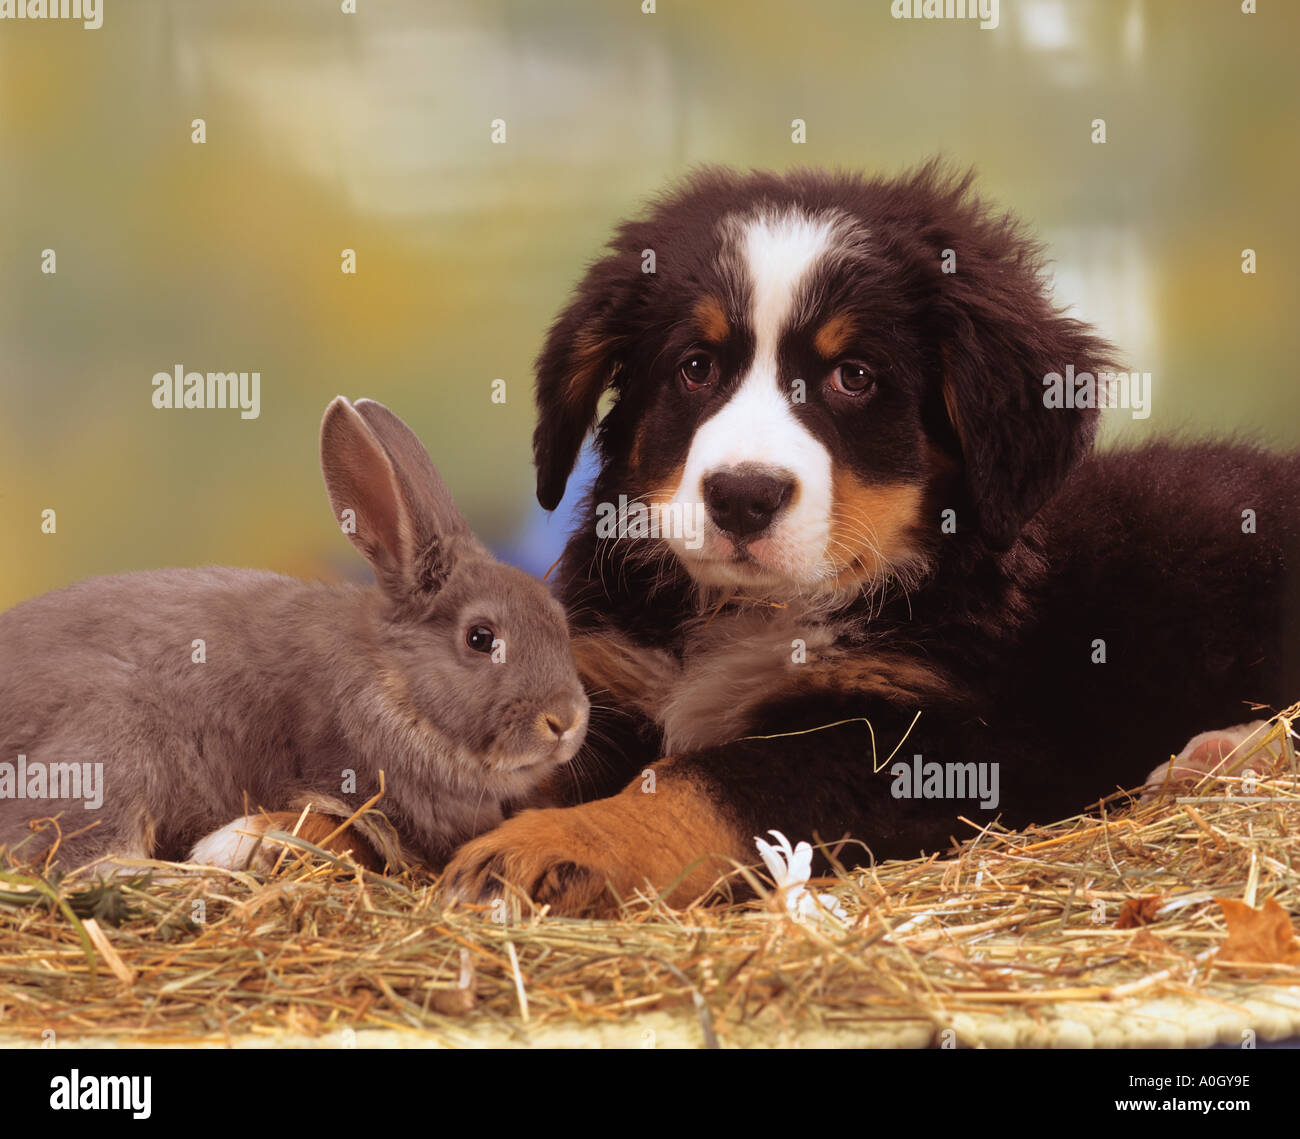 Animal-friendship : Bernese Mountain dog puppy with a rabbit - Stock Image